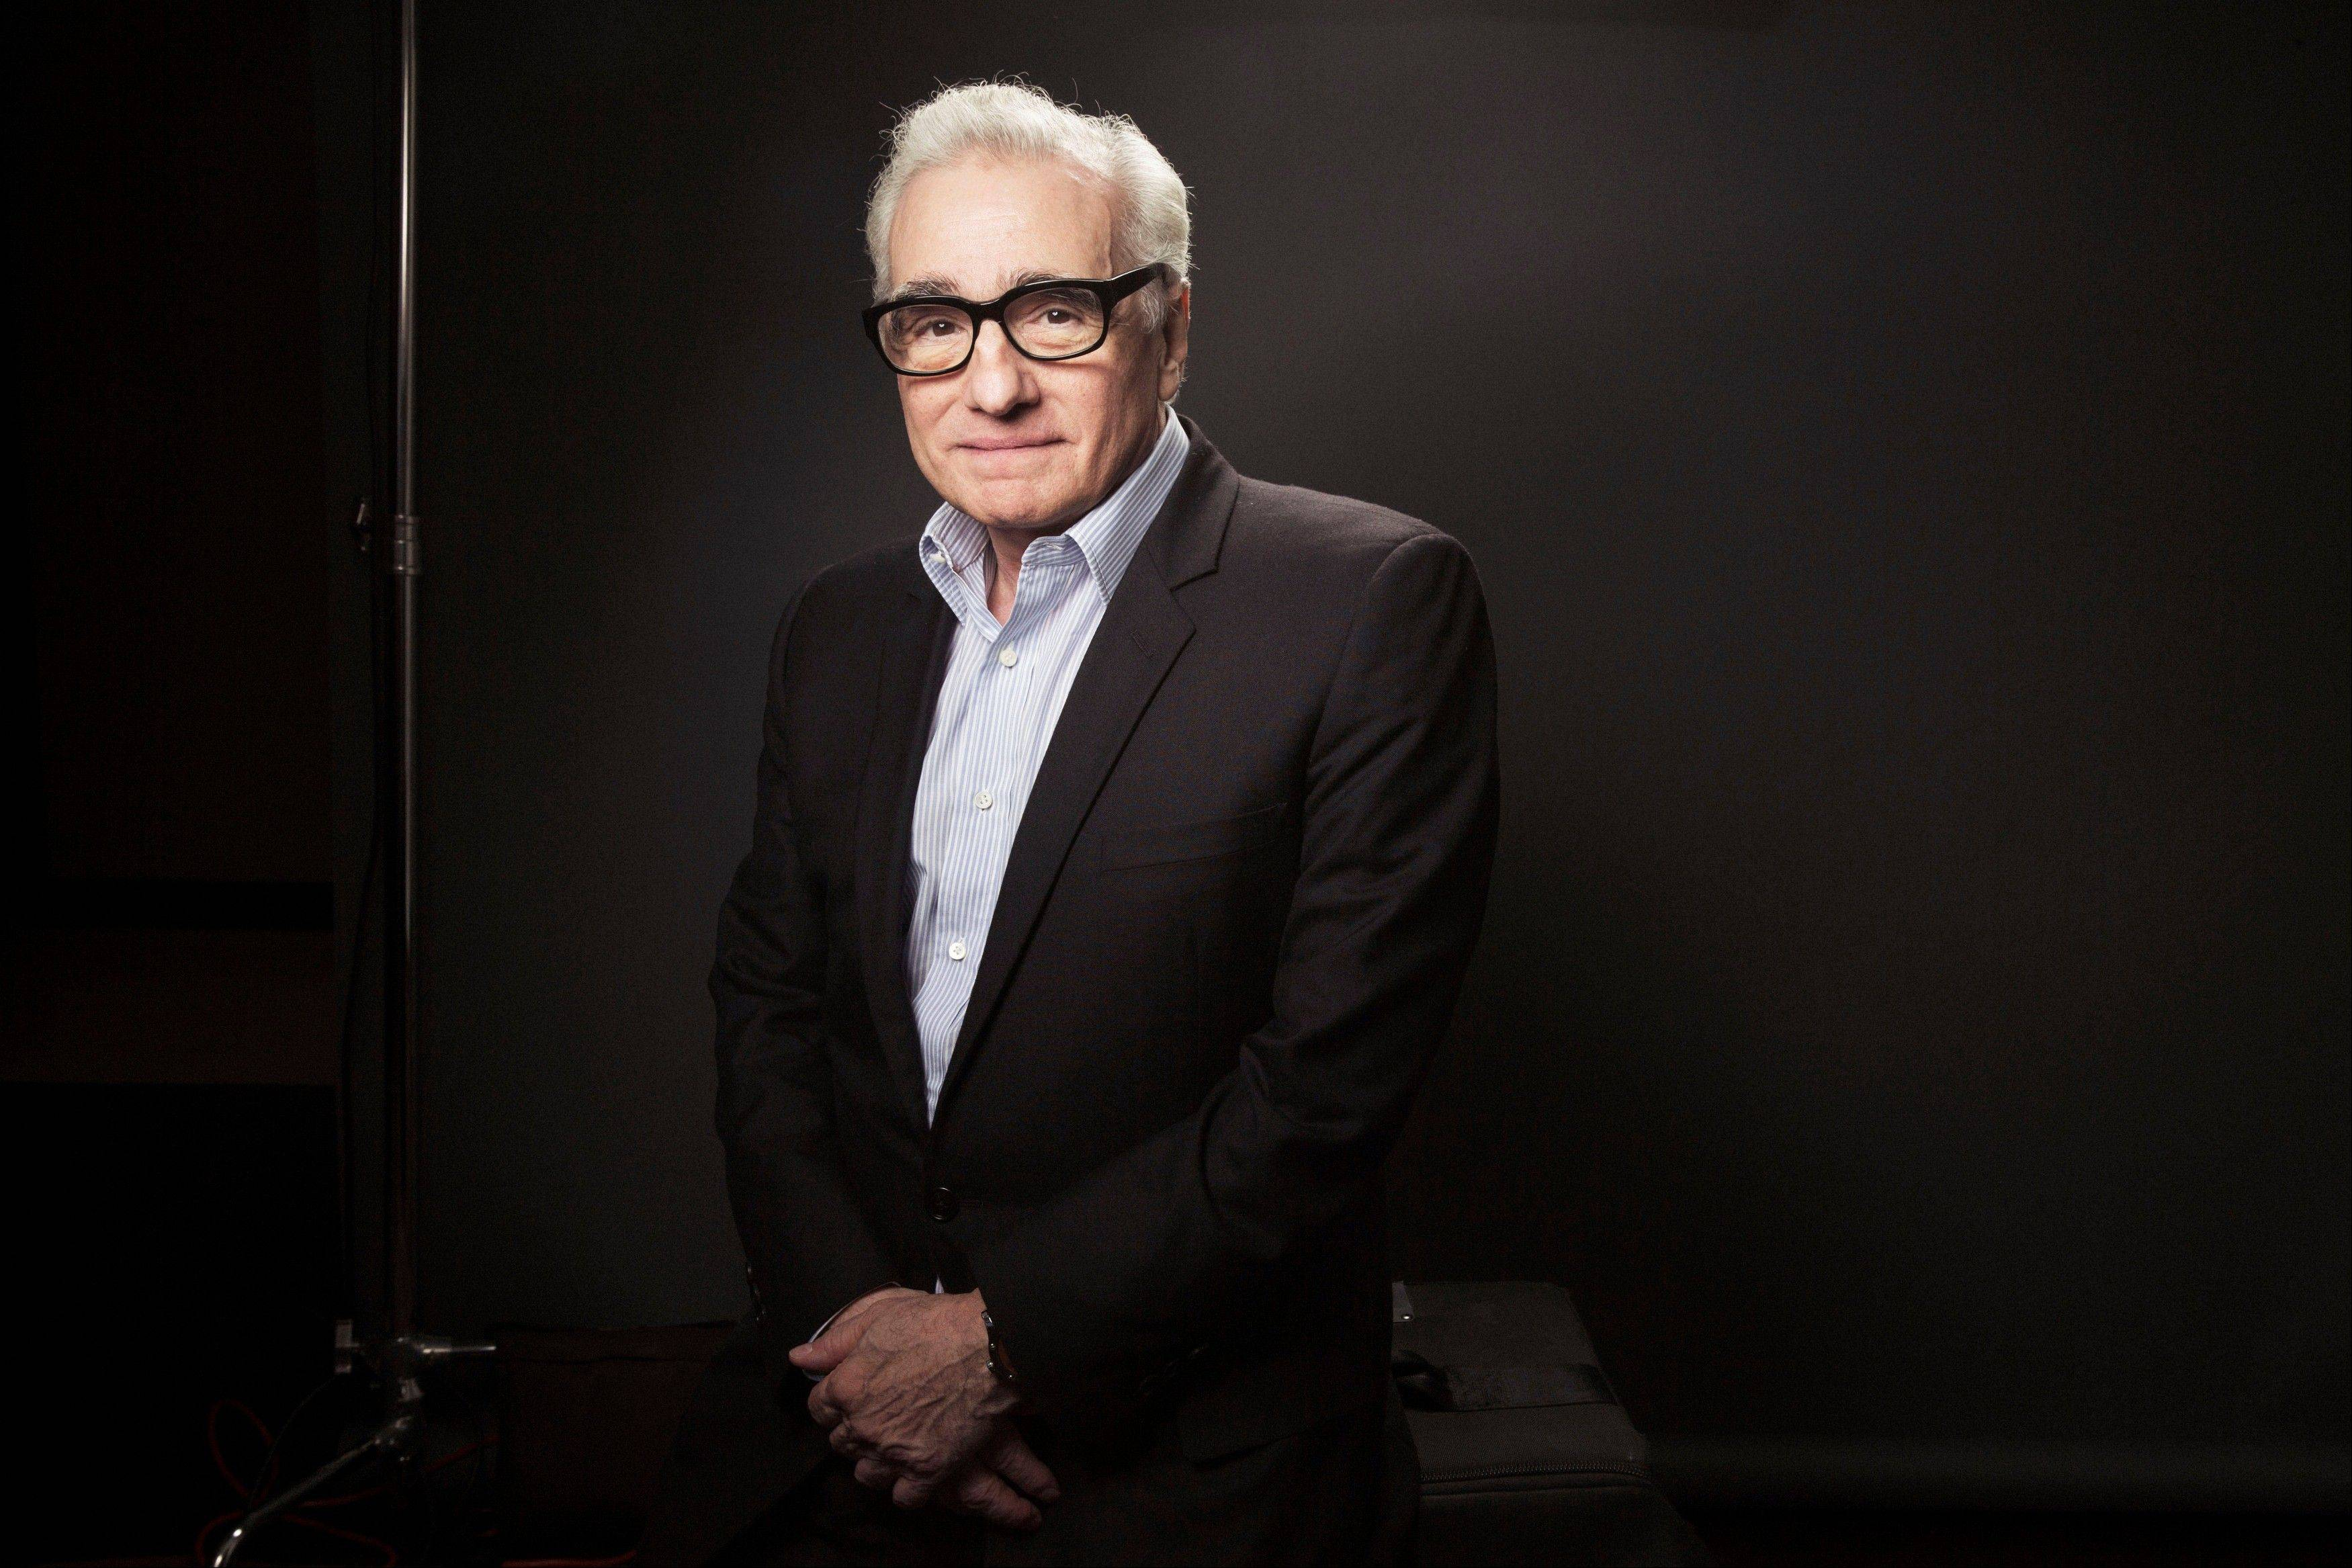 Film director Martin Scorsese's portrait of Wall Street excess has been judged by some critics and moviegoers as a glorification of unchecked greed. But the movie's bad reputation as an orgy of drugs, sex and money has also drawn eager crowds.